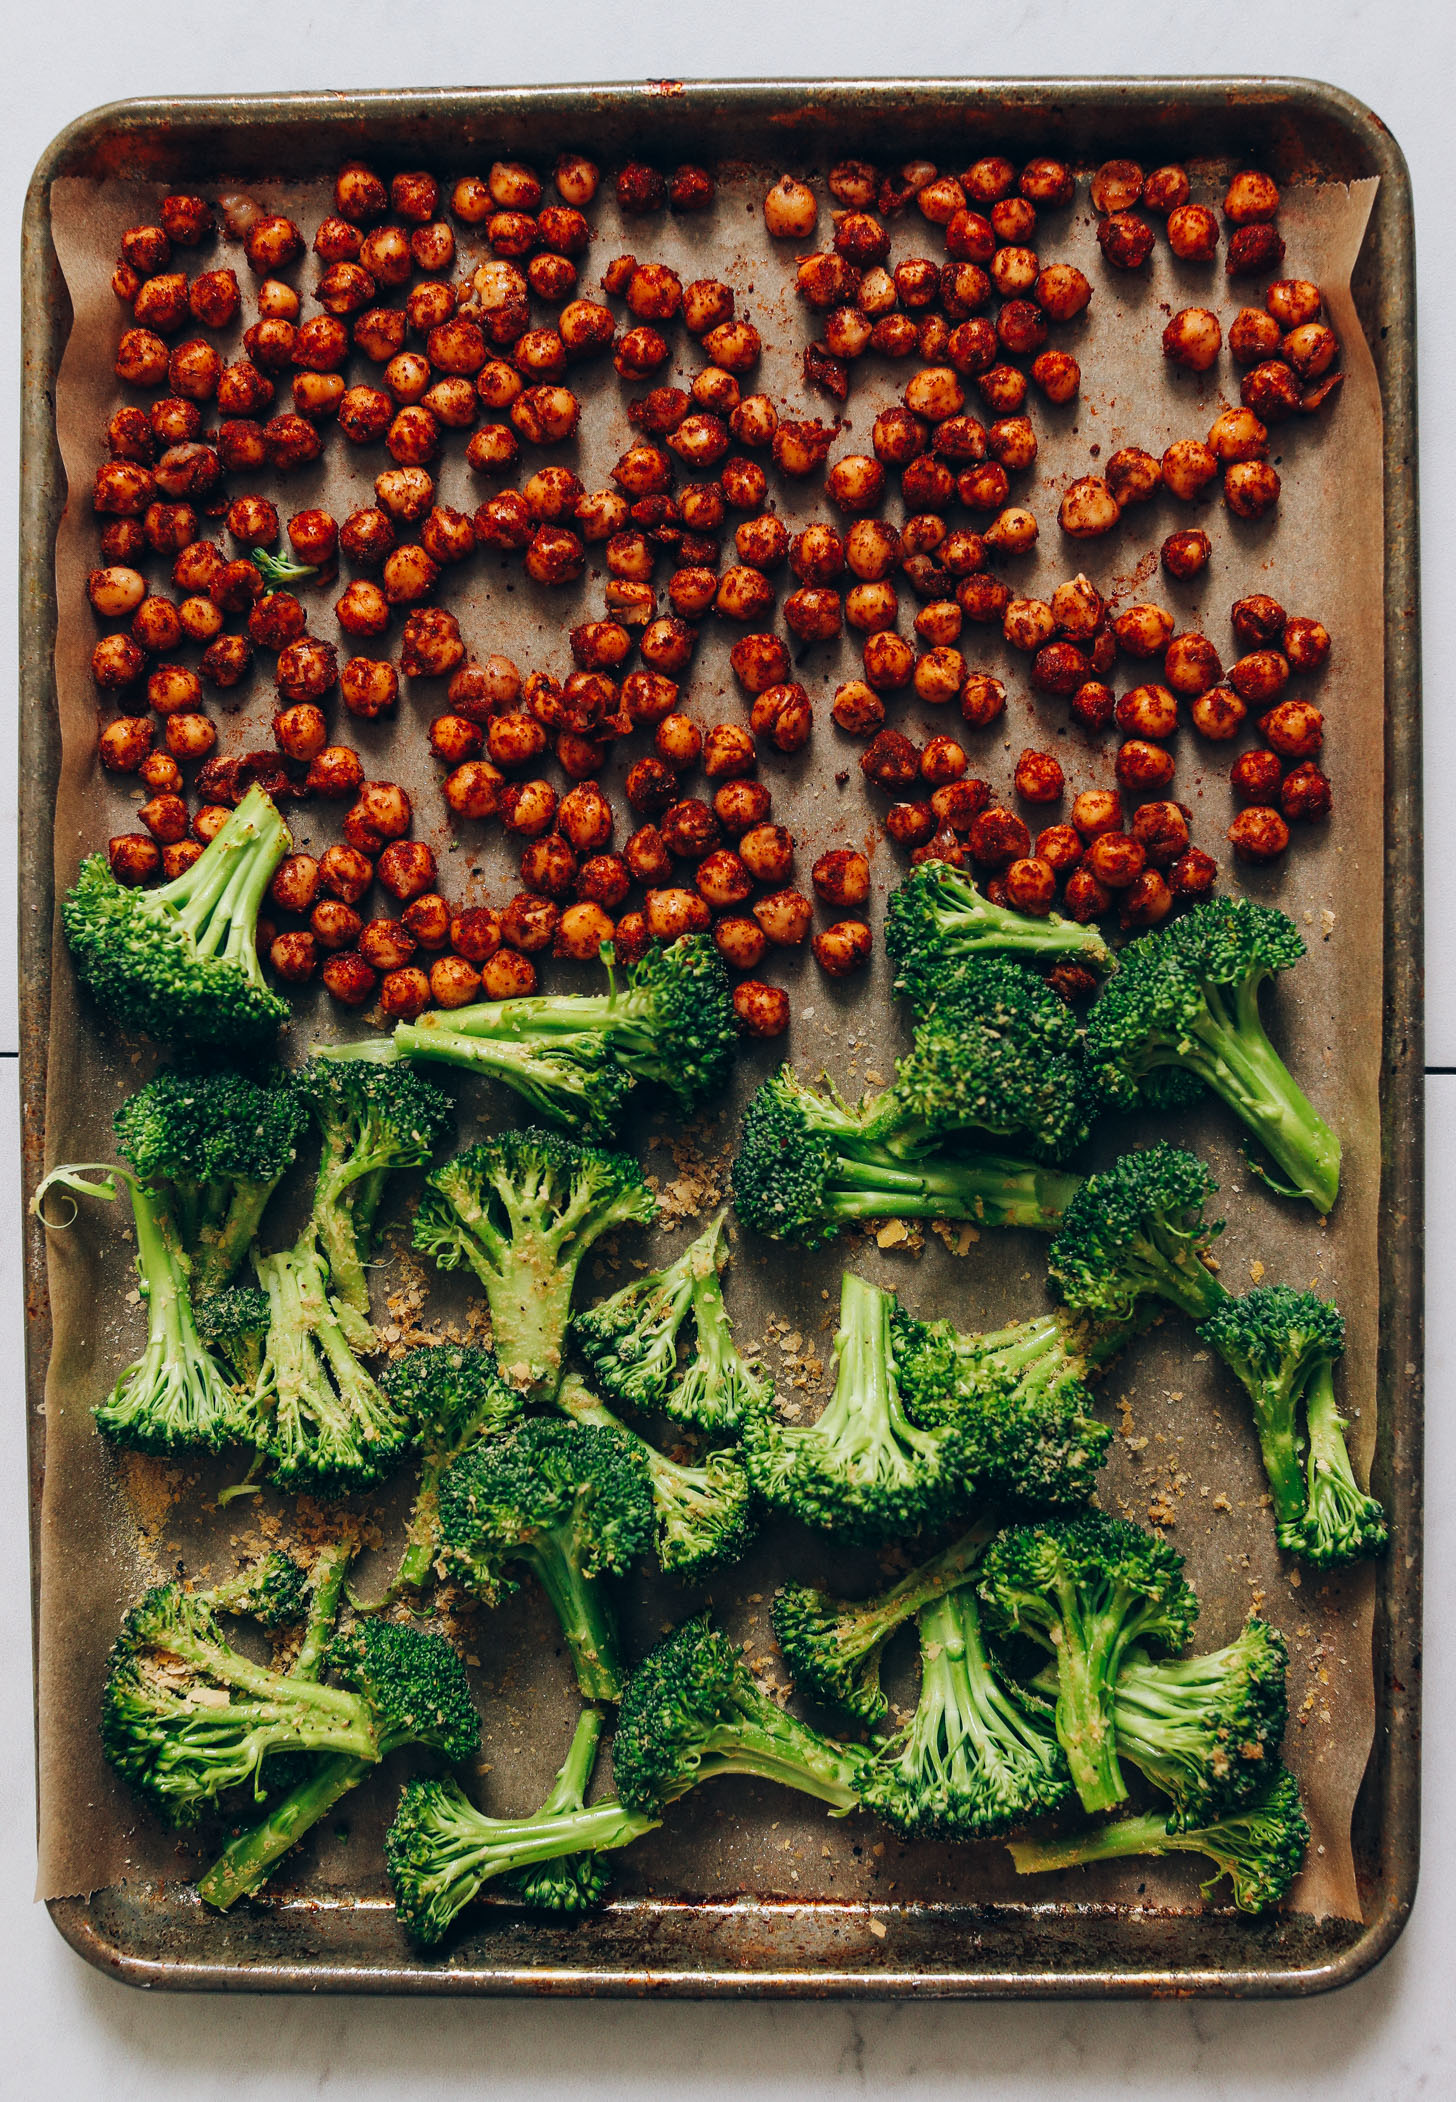 Parchment-lined baking sheet of broccoli and seasoned chickpeas